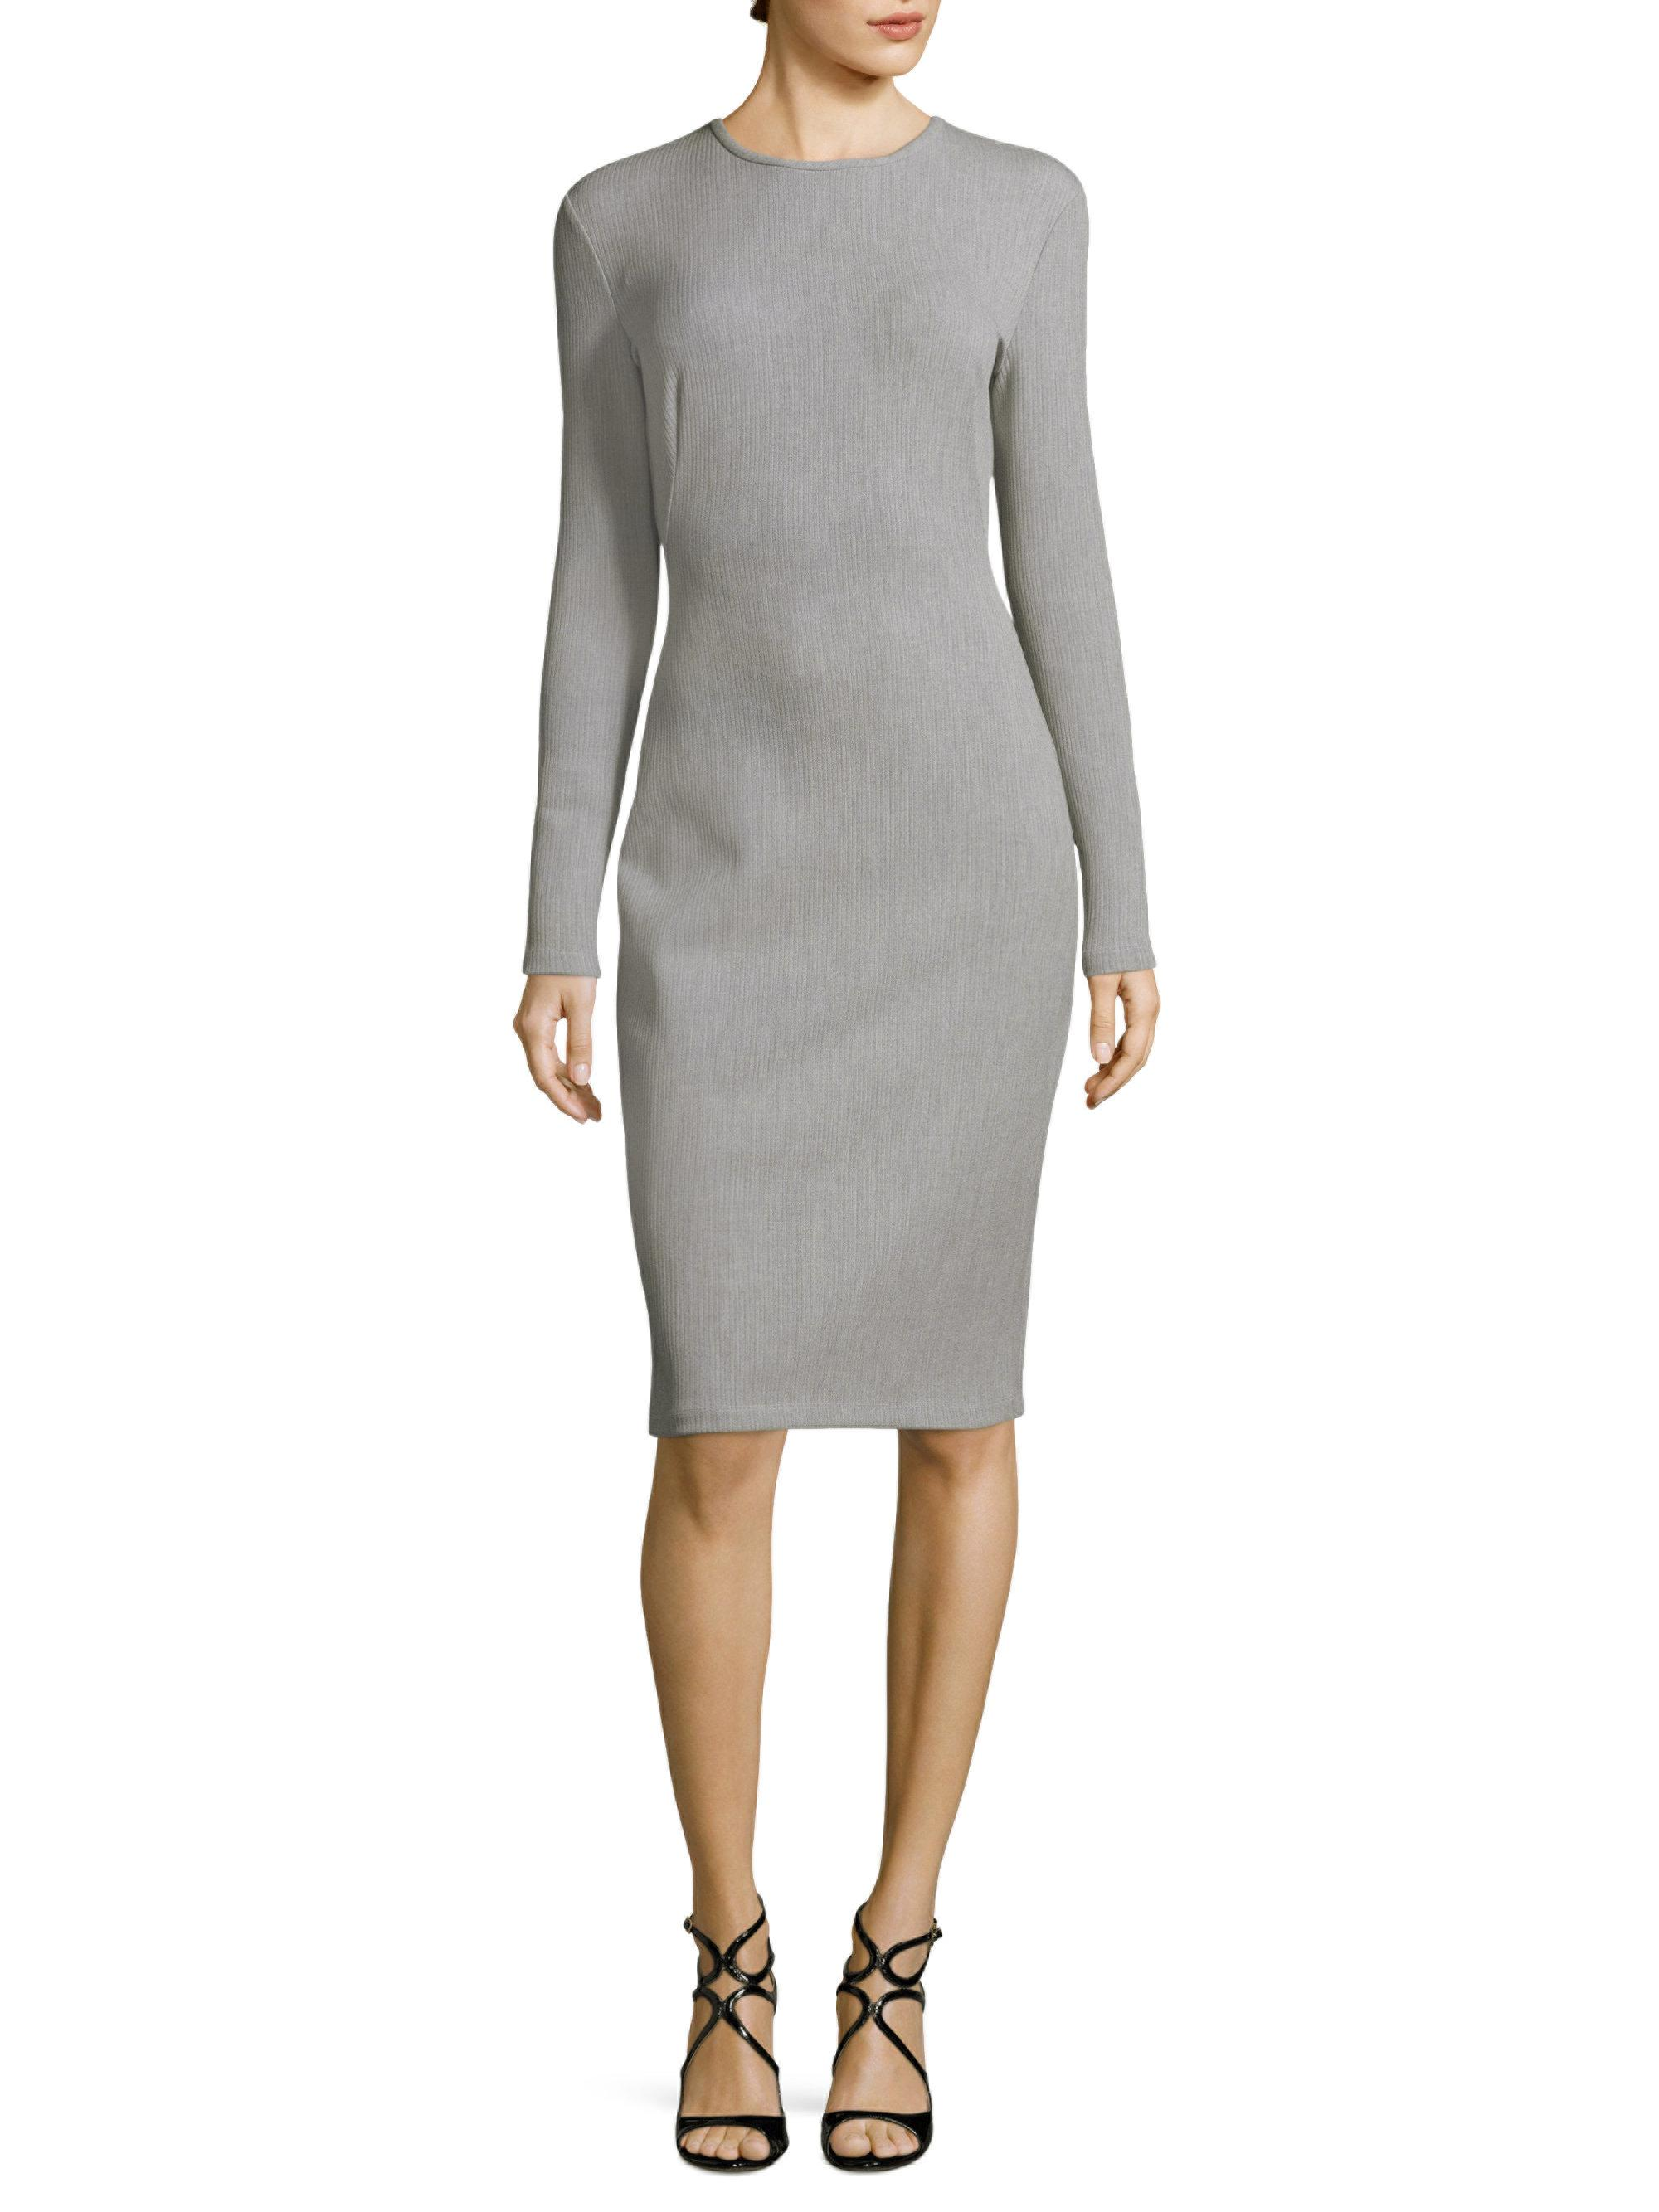 986d80e5 Black Halo Desoto Textured Sheath Dress in Gray - Lyst